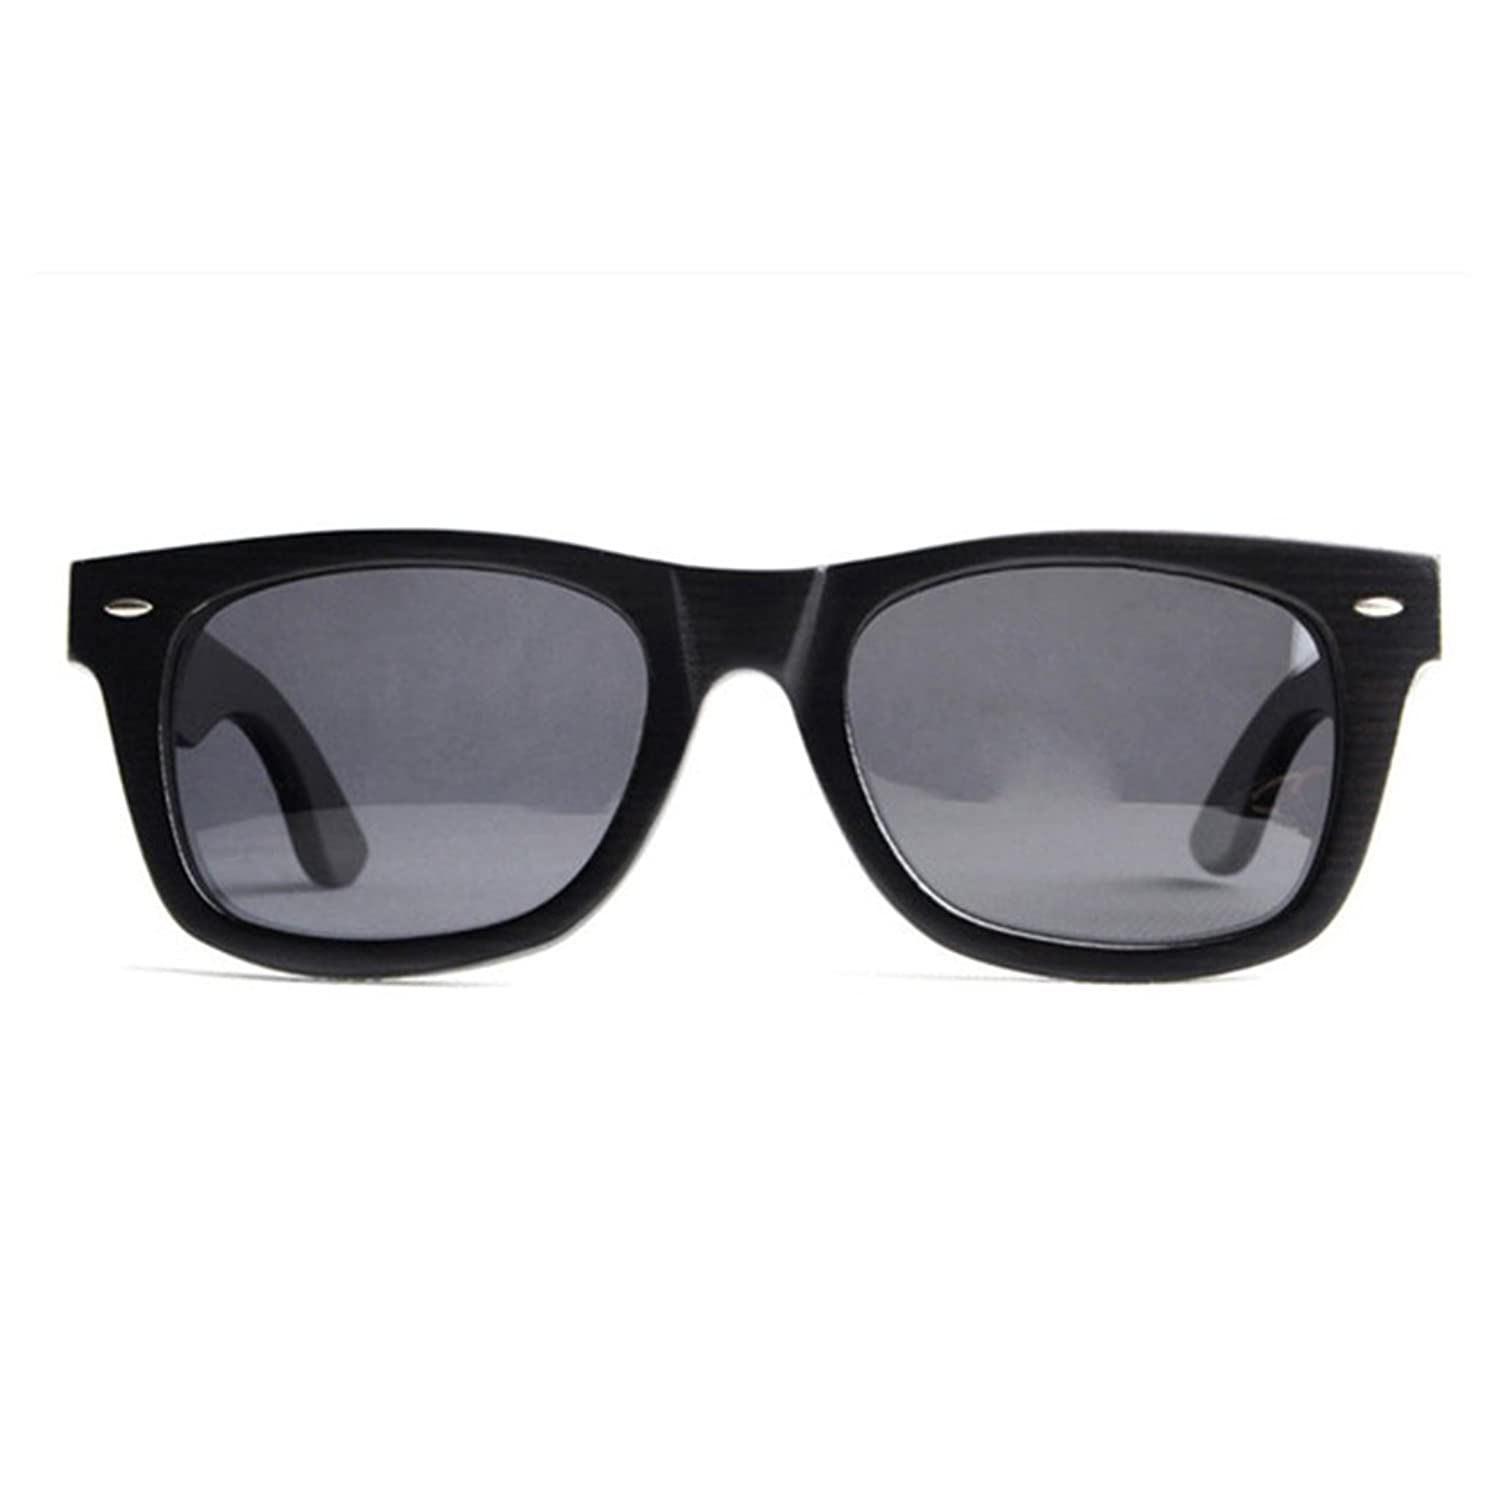 All Black Wayfarer - Wooden Sunglasses - Zebidah